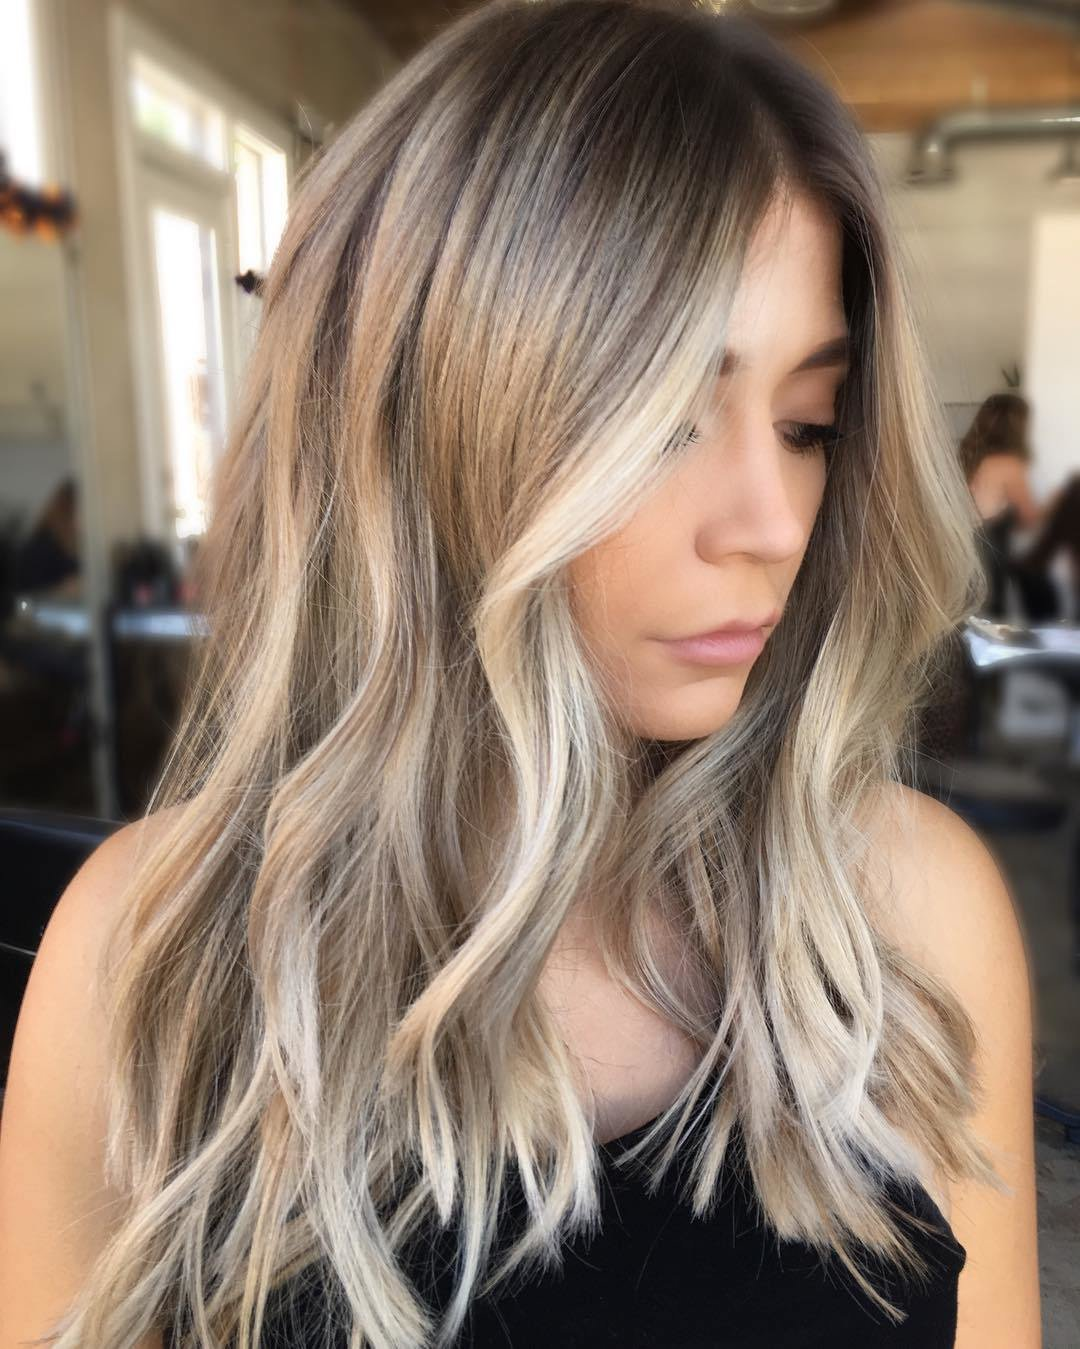 The Best 10 Ash Blonde Hairstyles For All Skin Tones 2019 Pictures